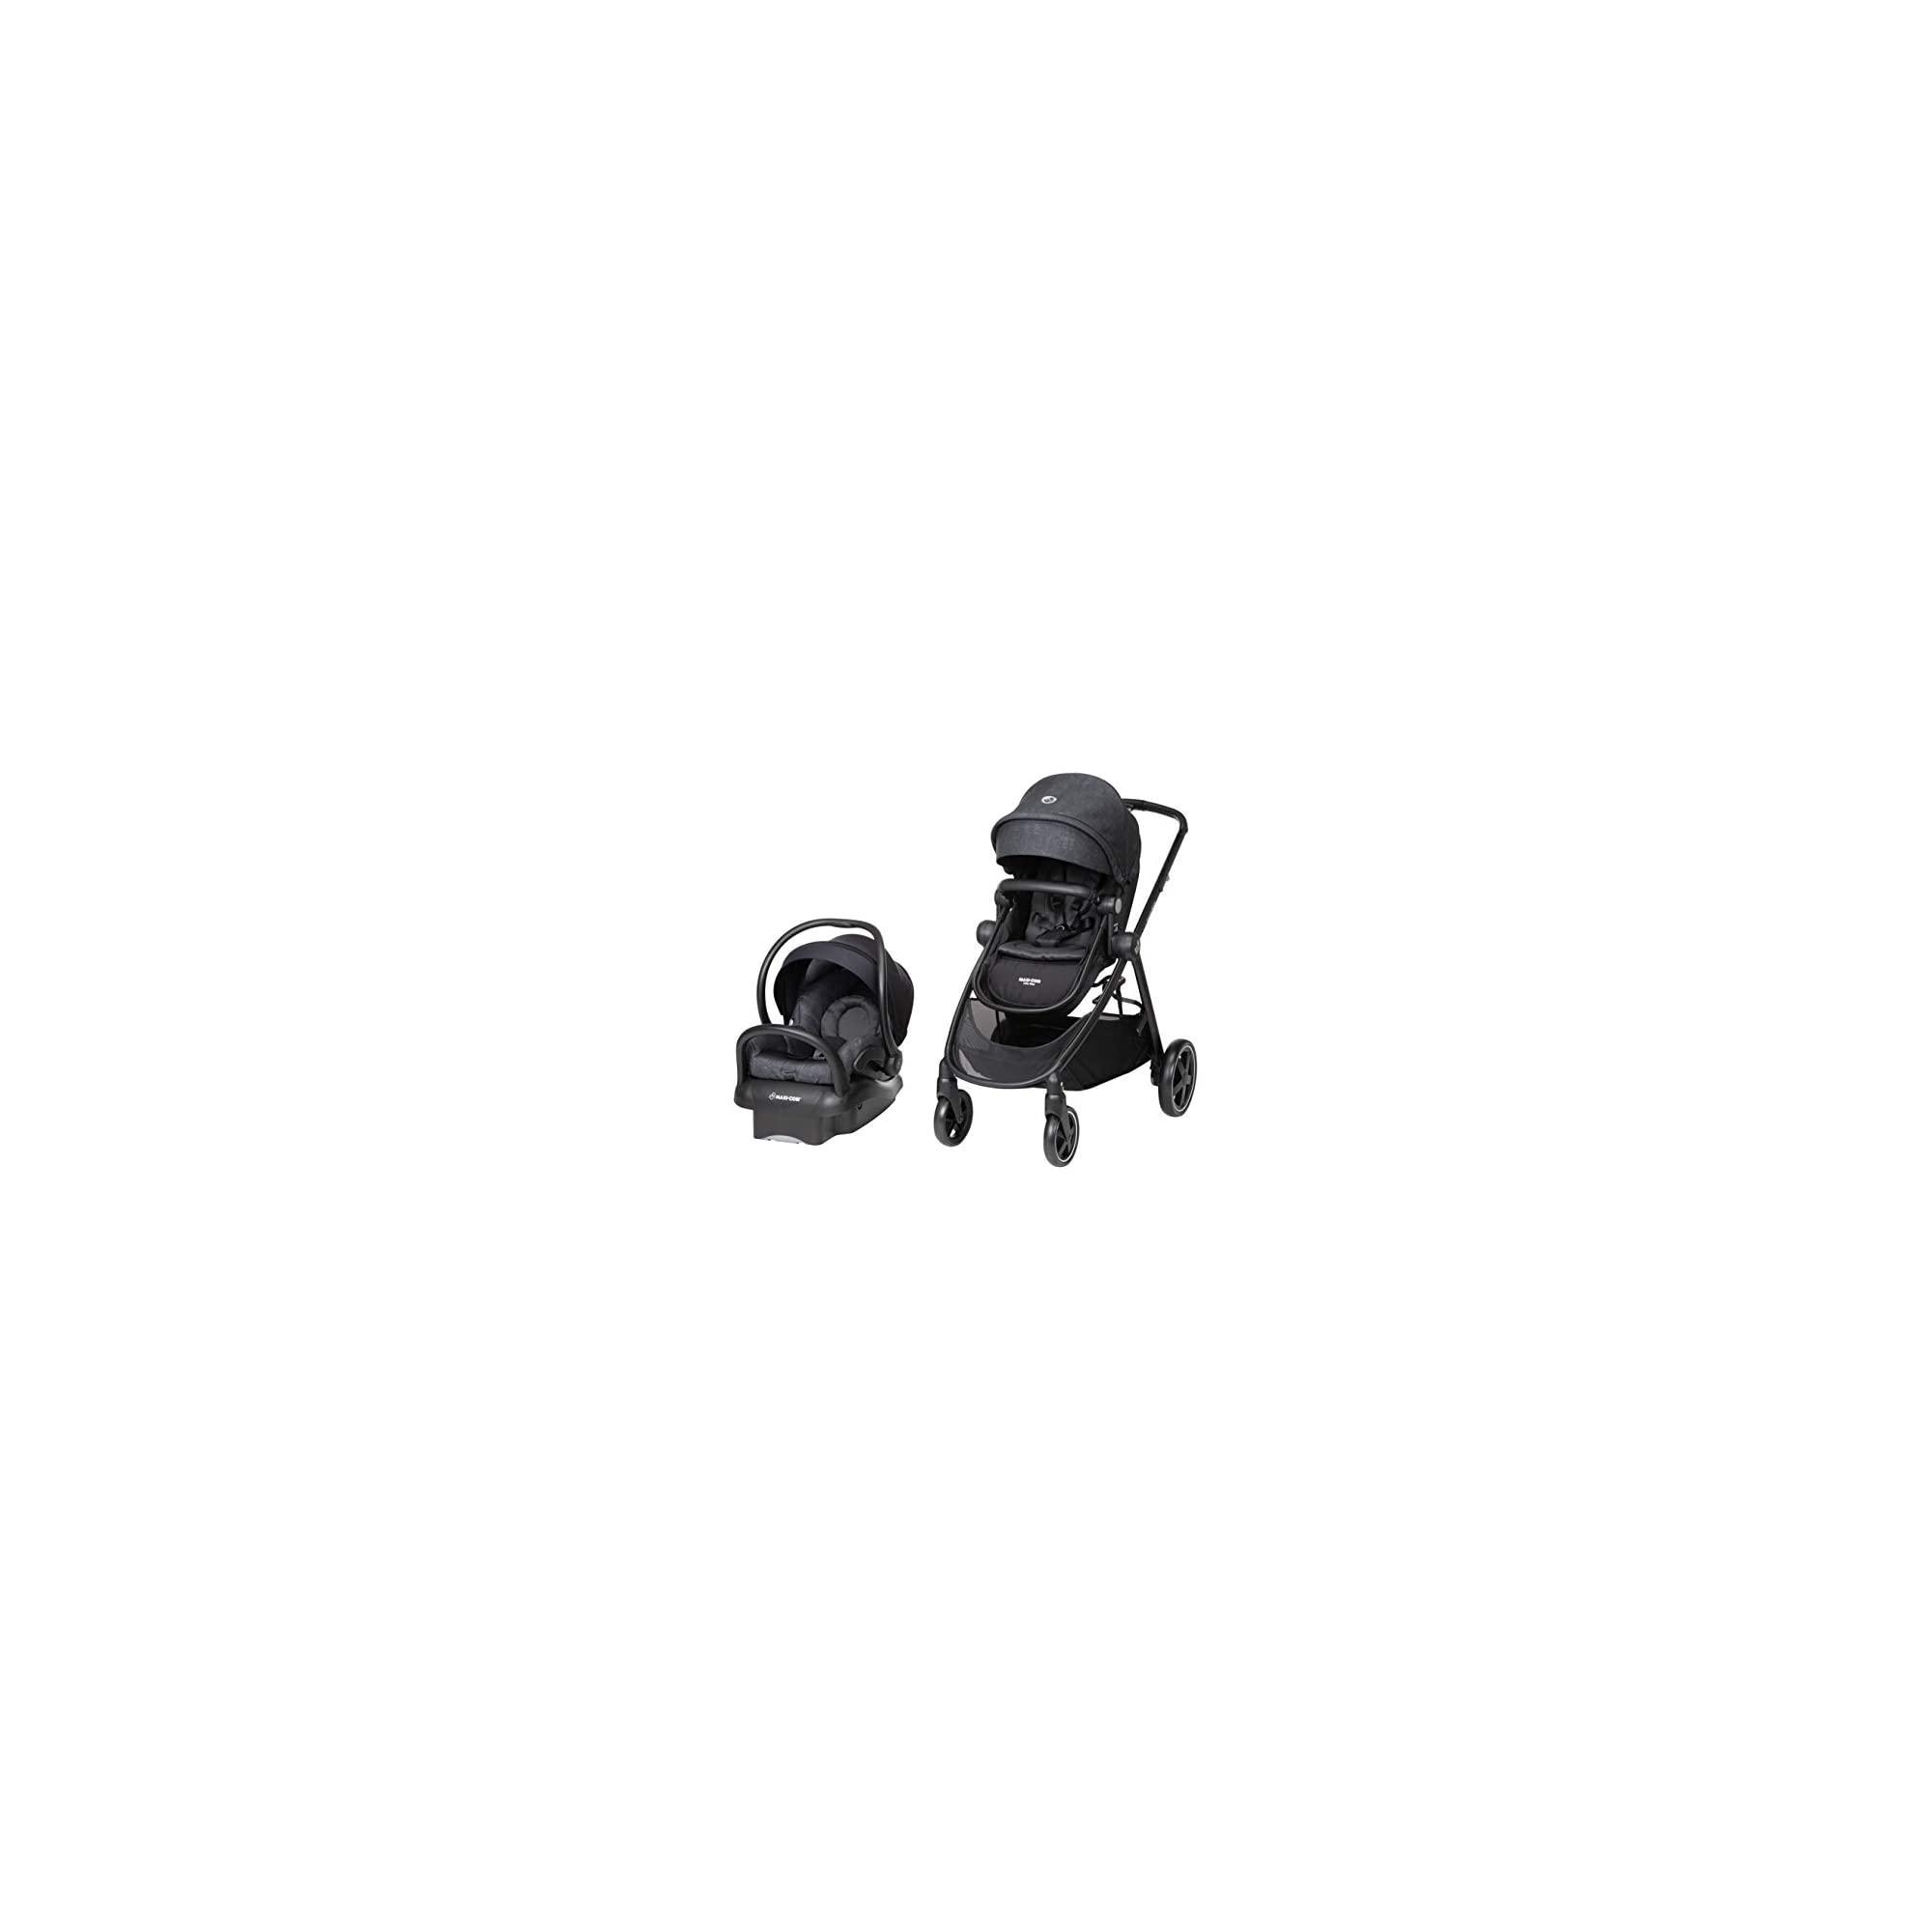 Maxi-Cosi Zelia Max 5-in-1 Modular Travel System, Nomad Black, One Size